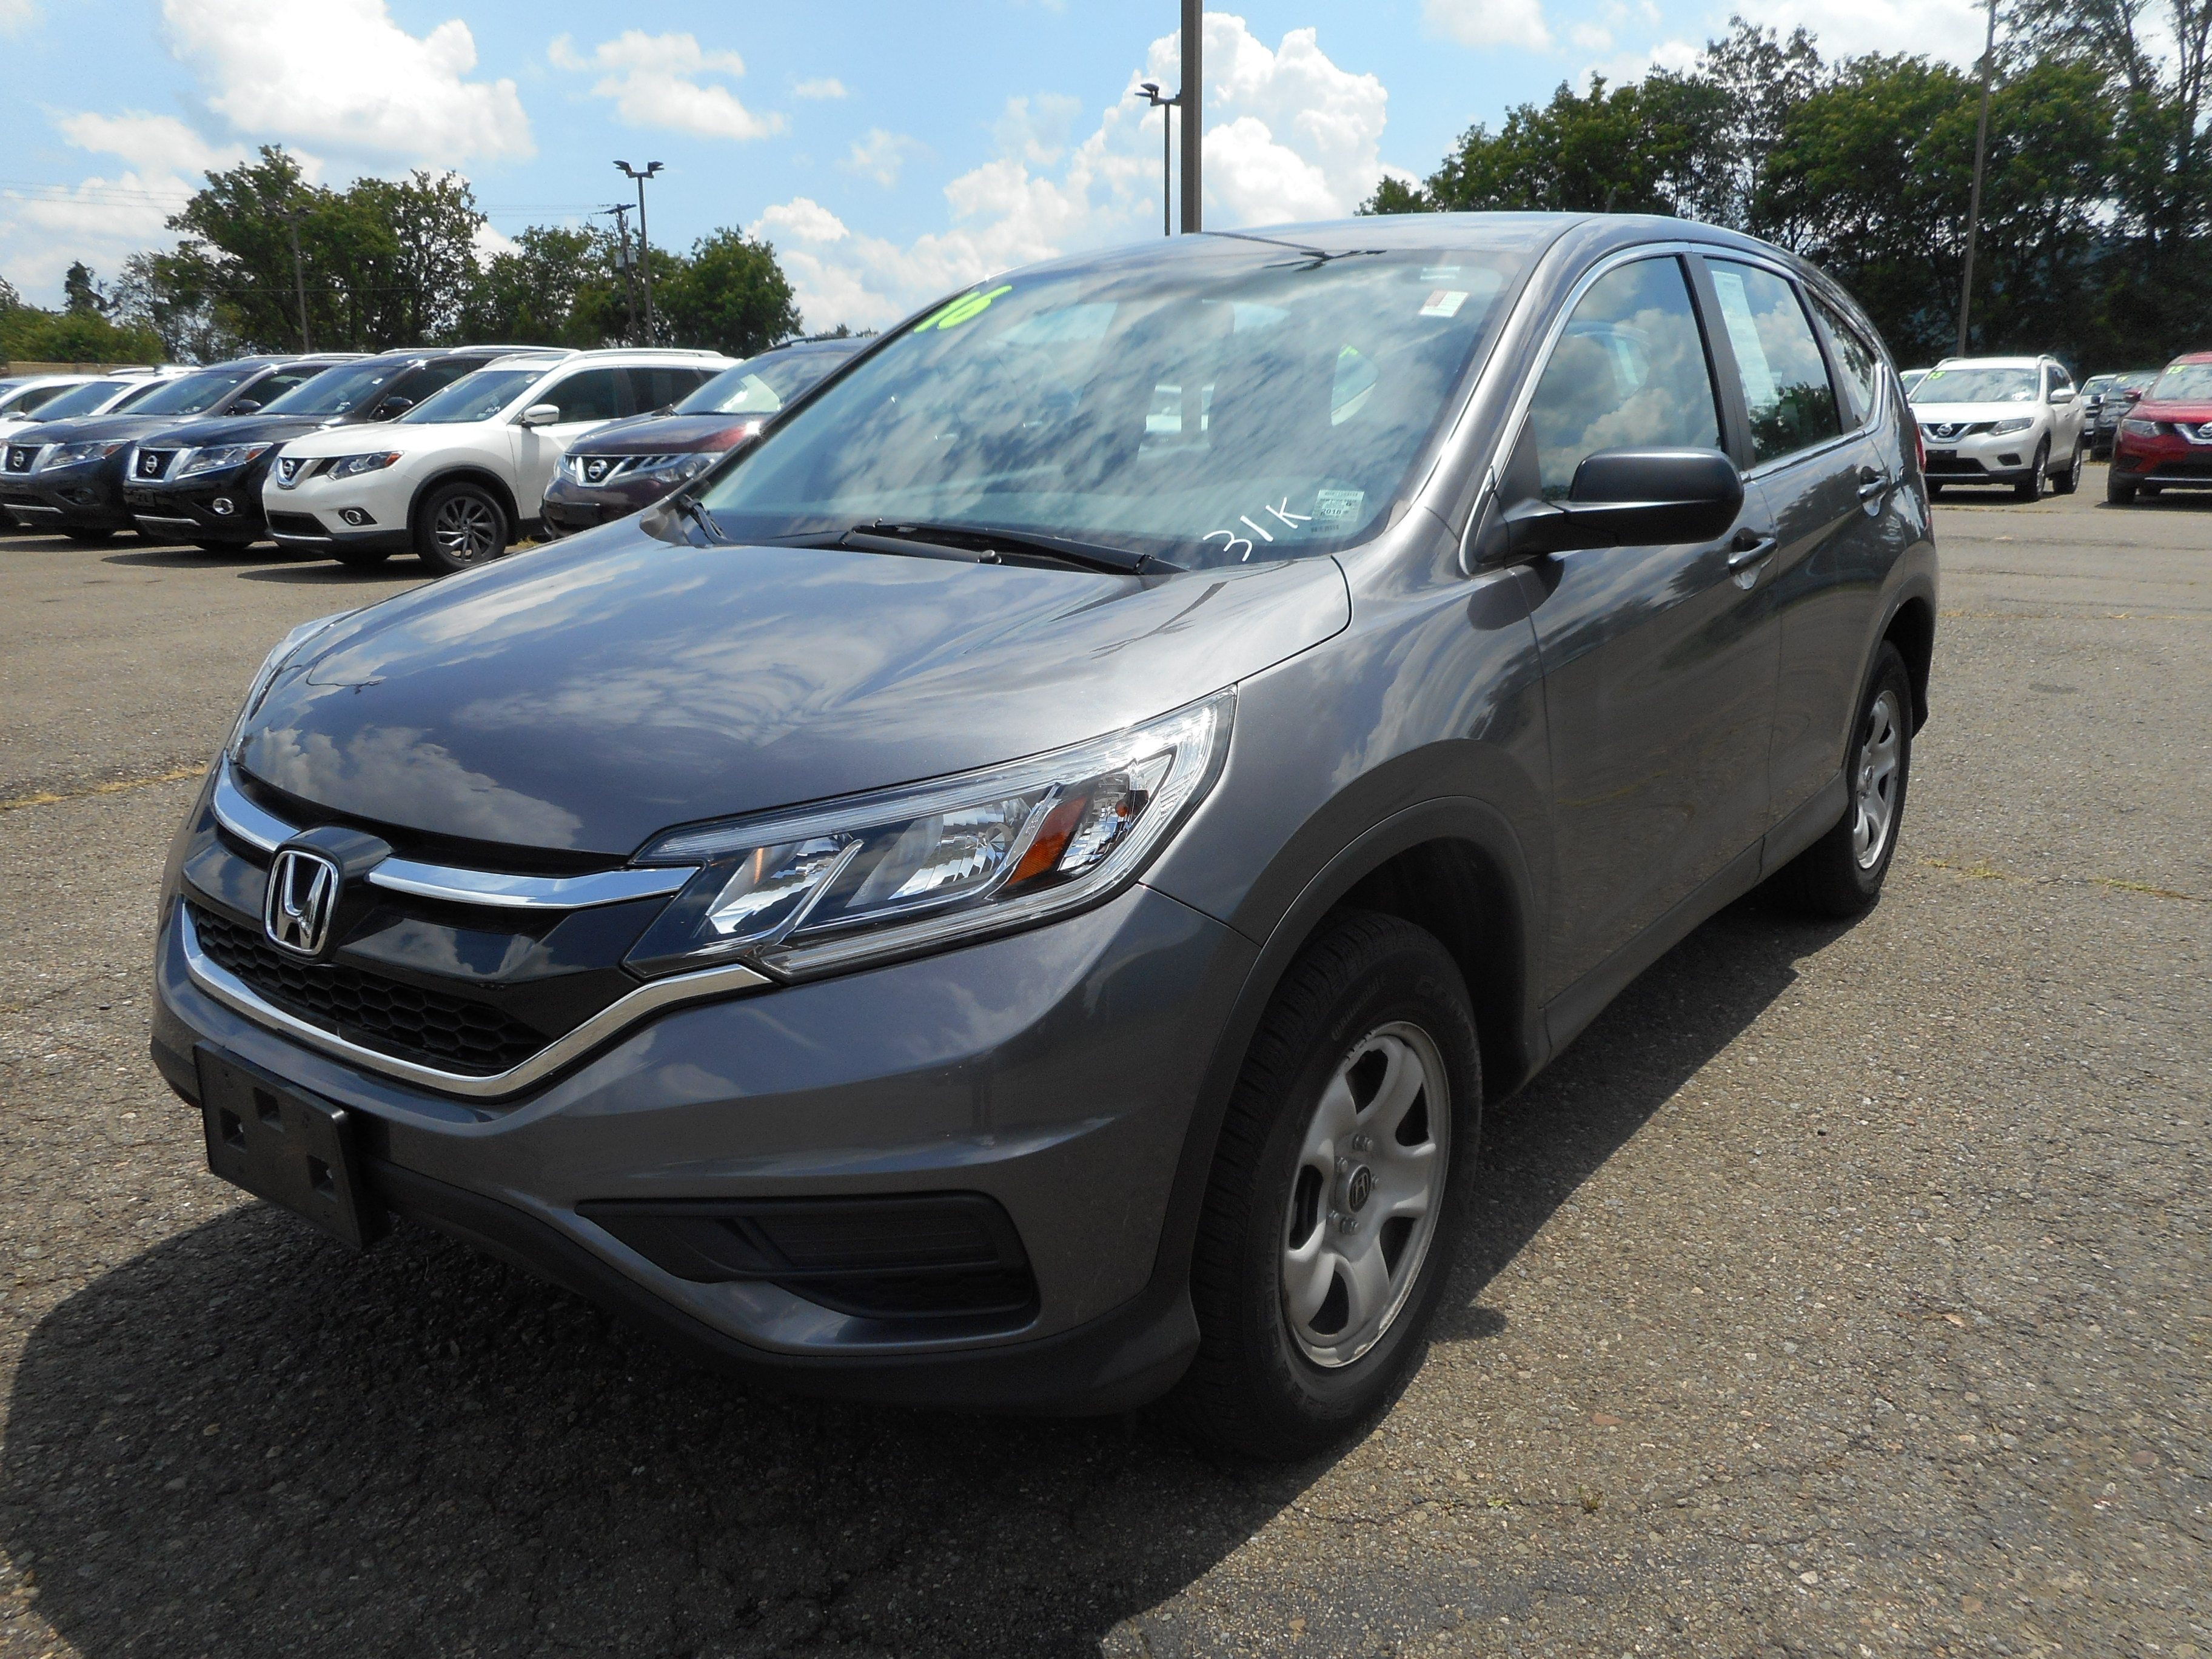 used car specials coupons 2016 honda cr v lx kevin 39 s royal auto owego ny. Black Bedroom Furniture Sets. Home Design Ideas